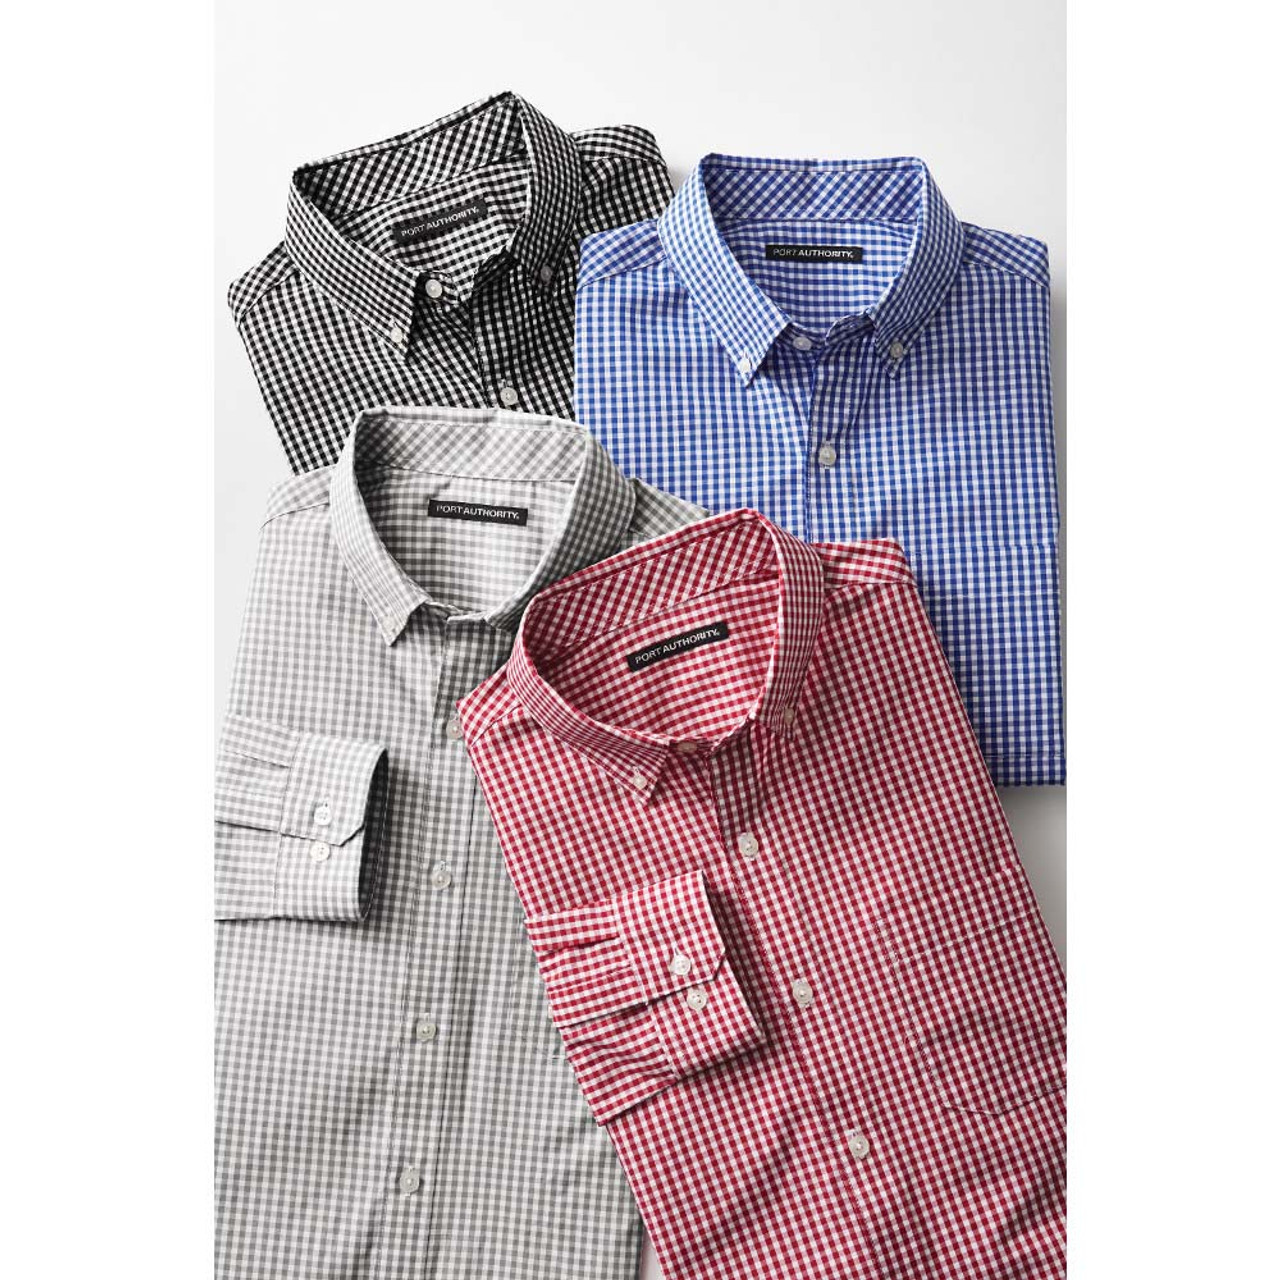 Easy Care Gingham Uniform Shirt for Men and Women